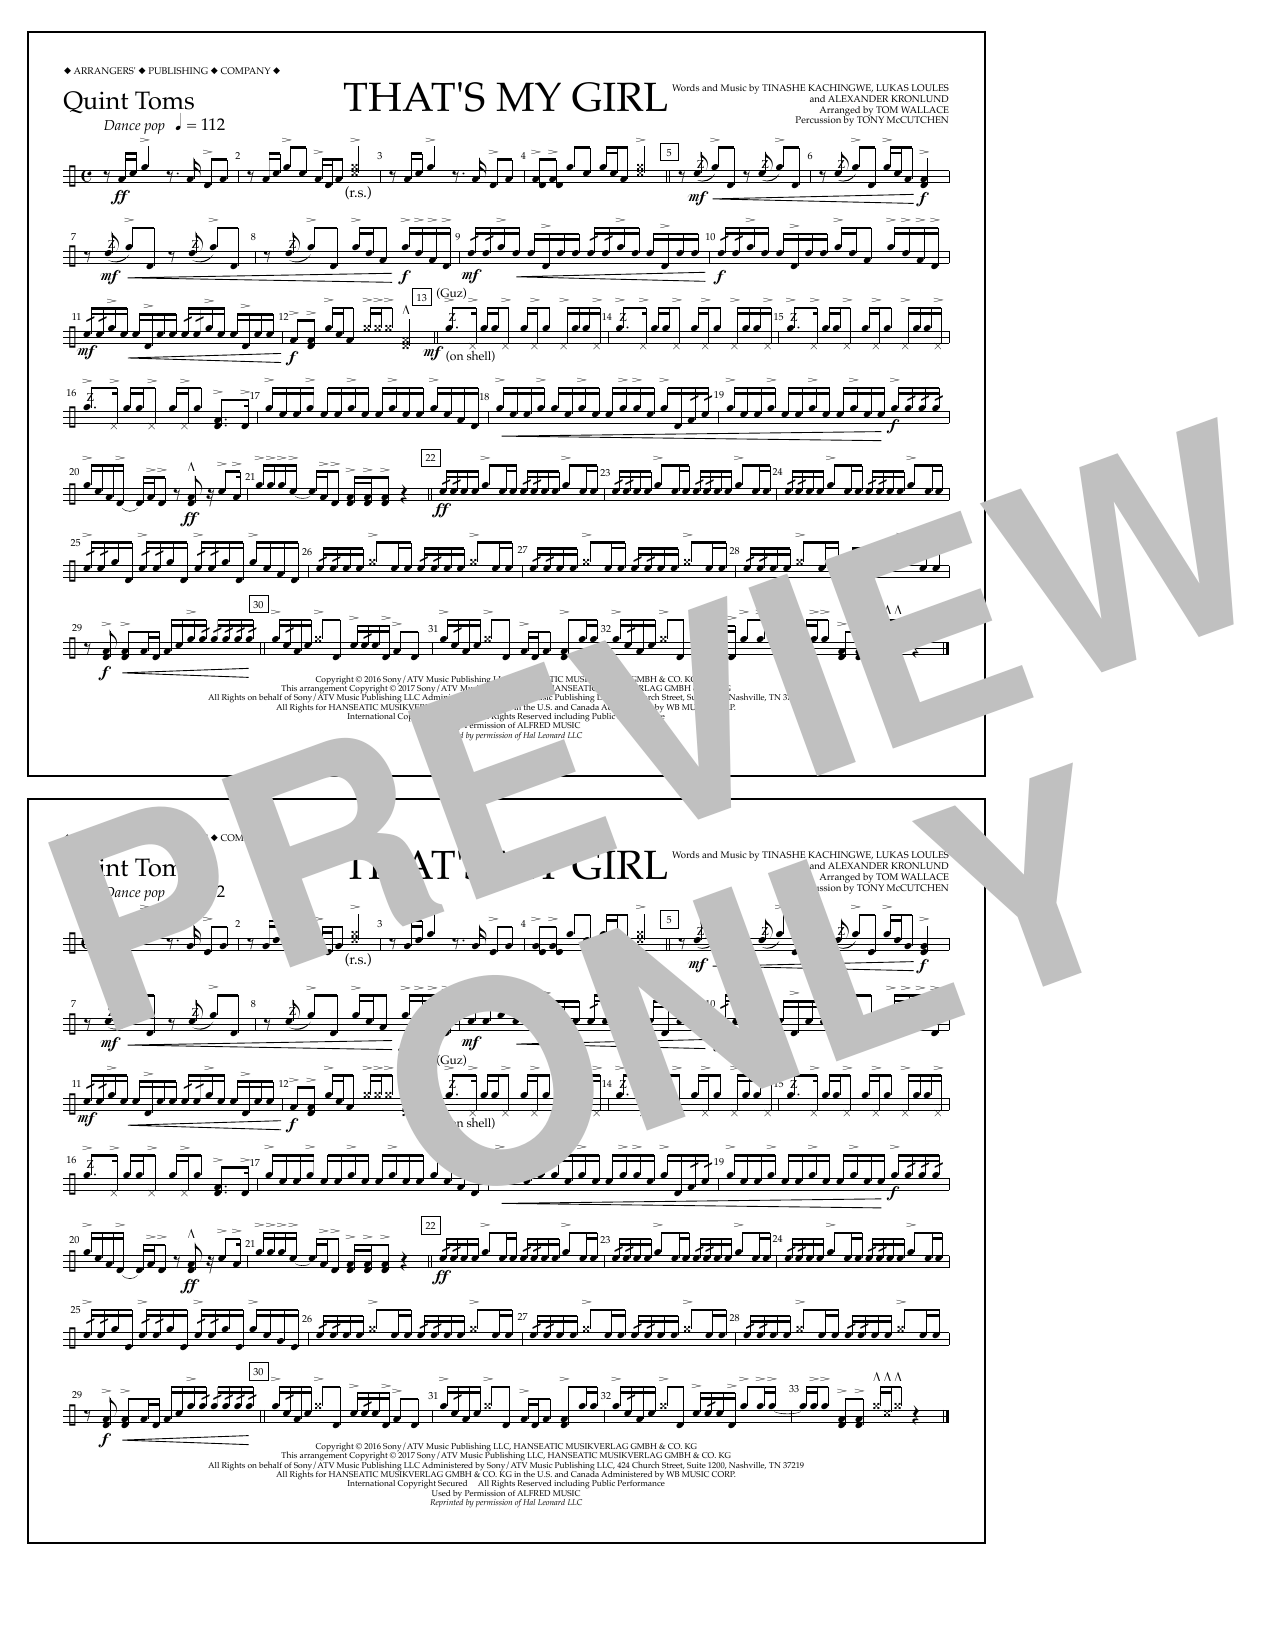 That's My Girl - Quint-Toms Sheet Music